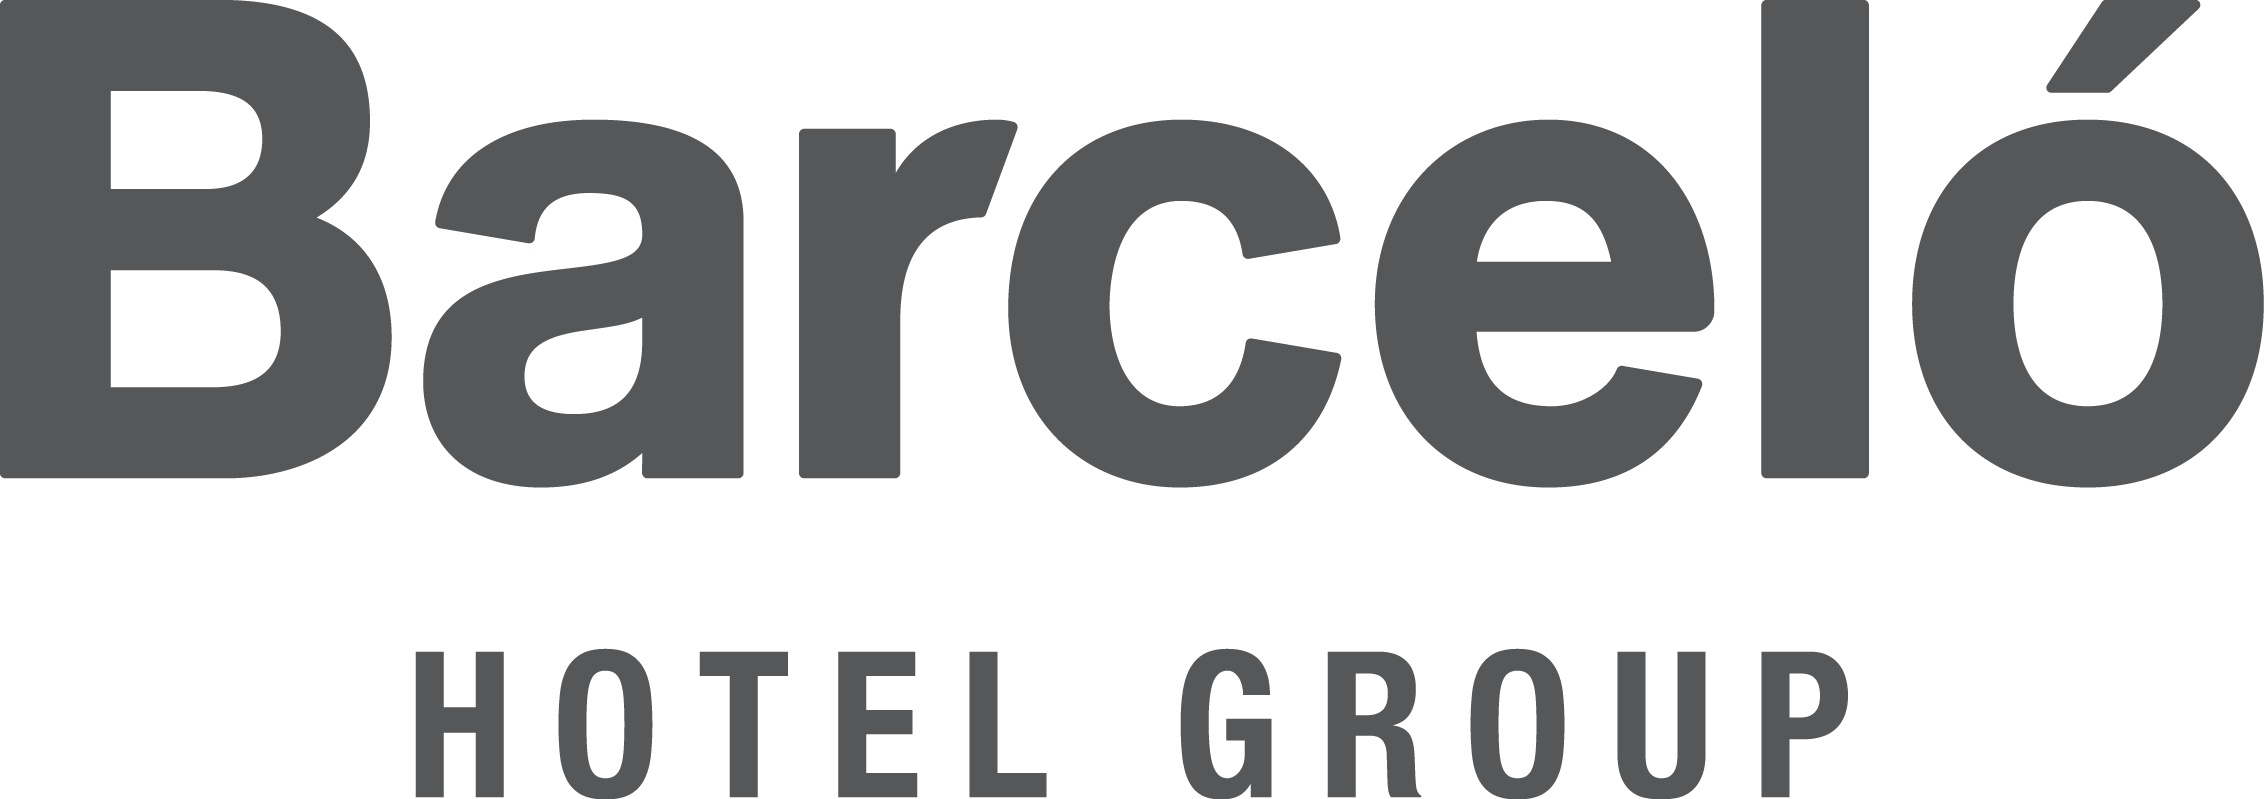 Barceló Hotel Group_pos.png